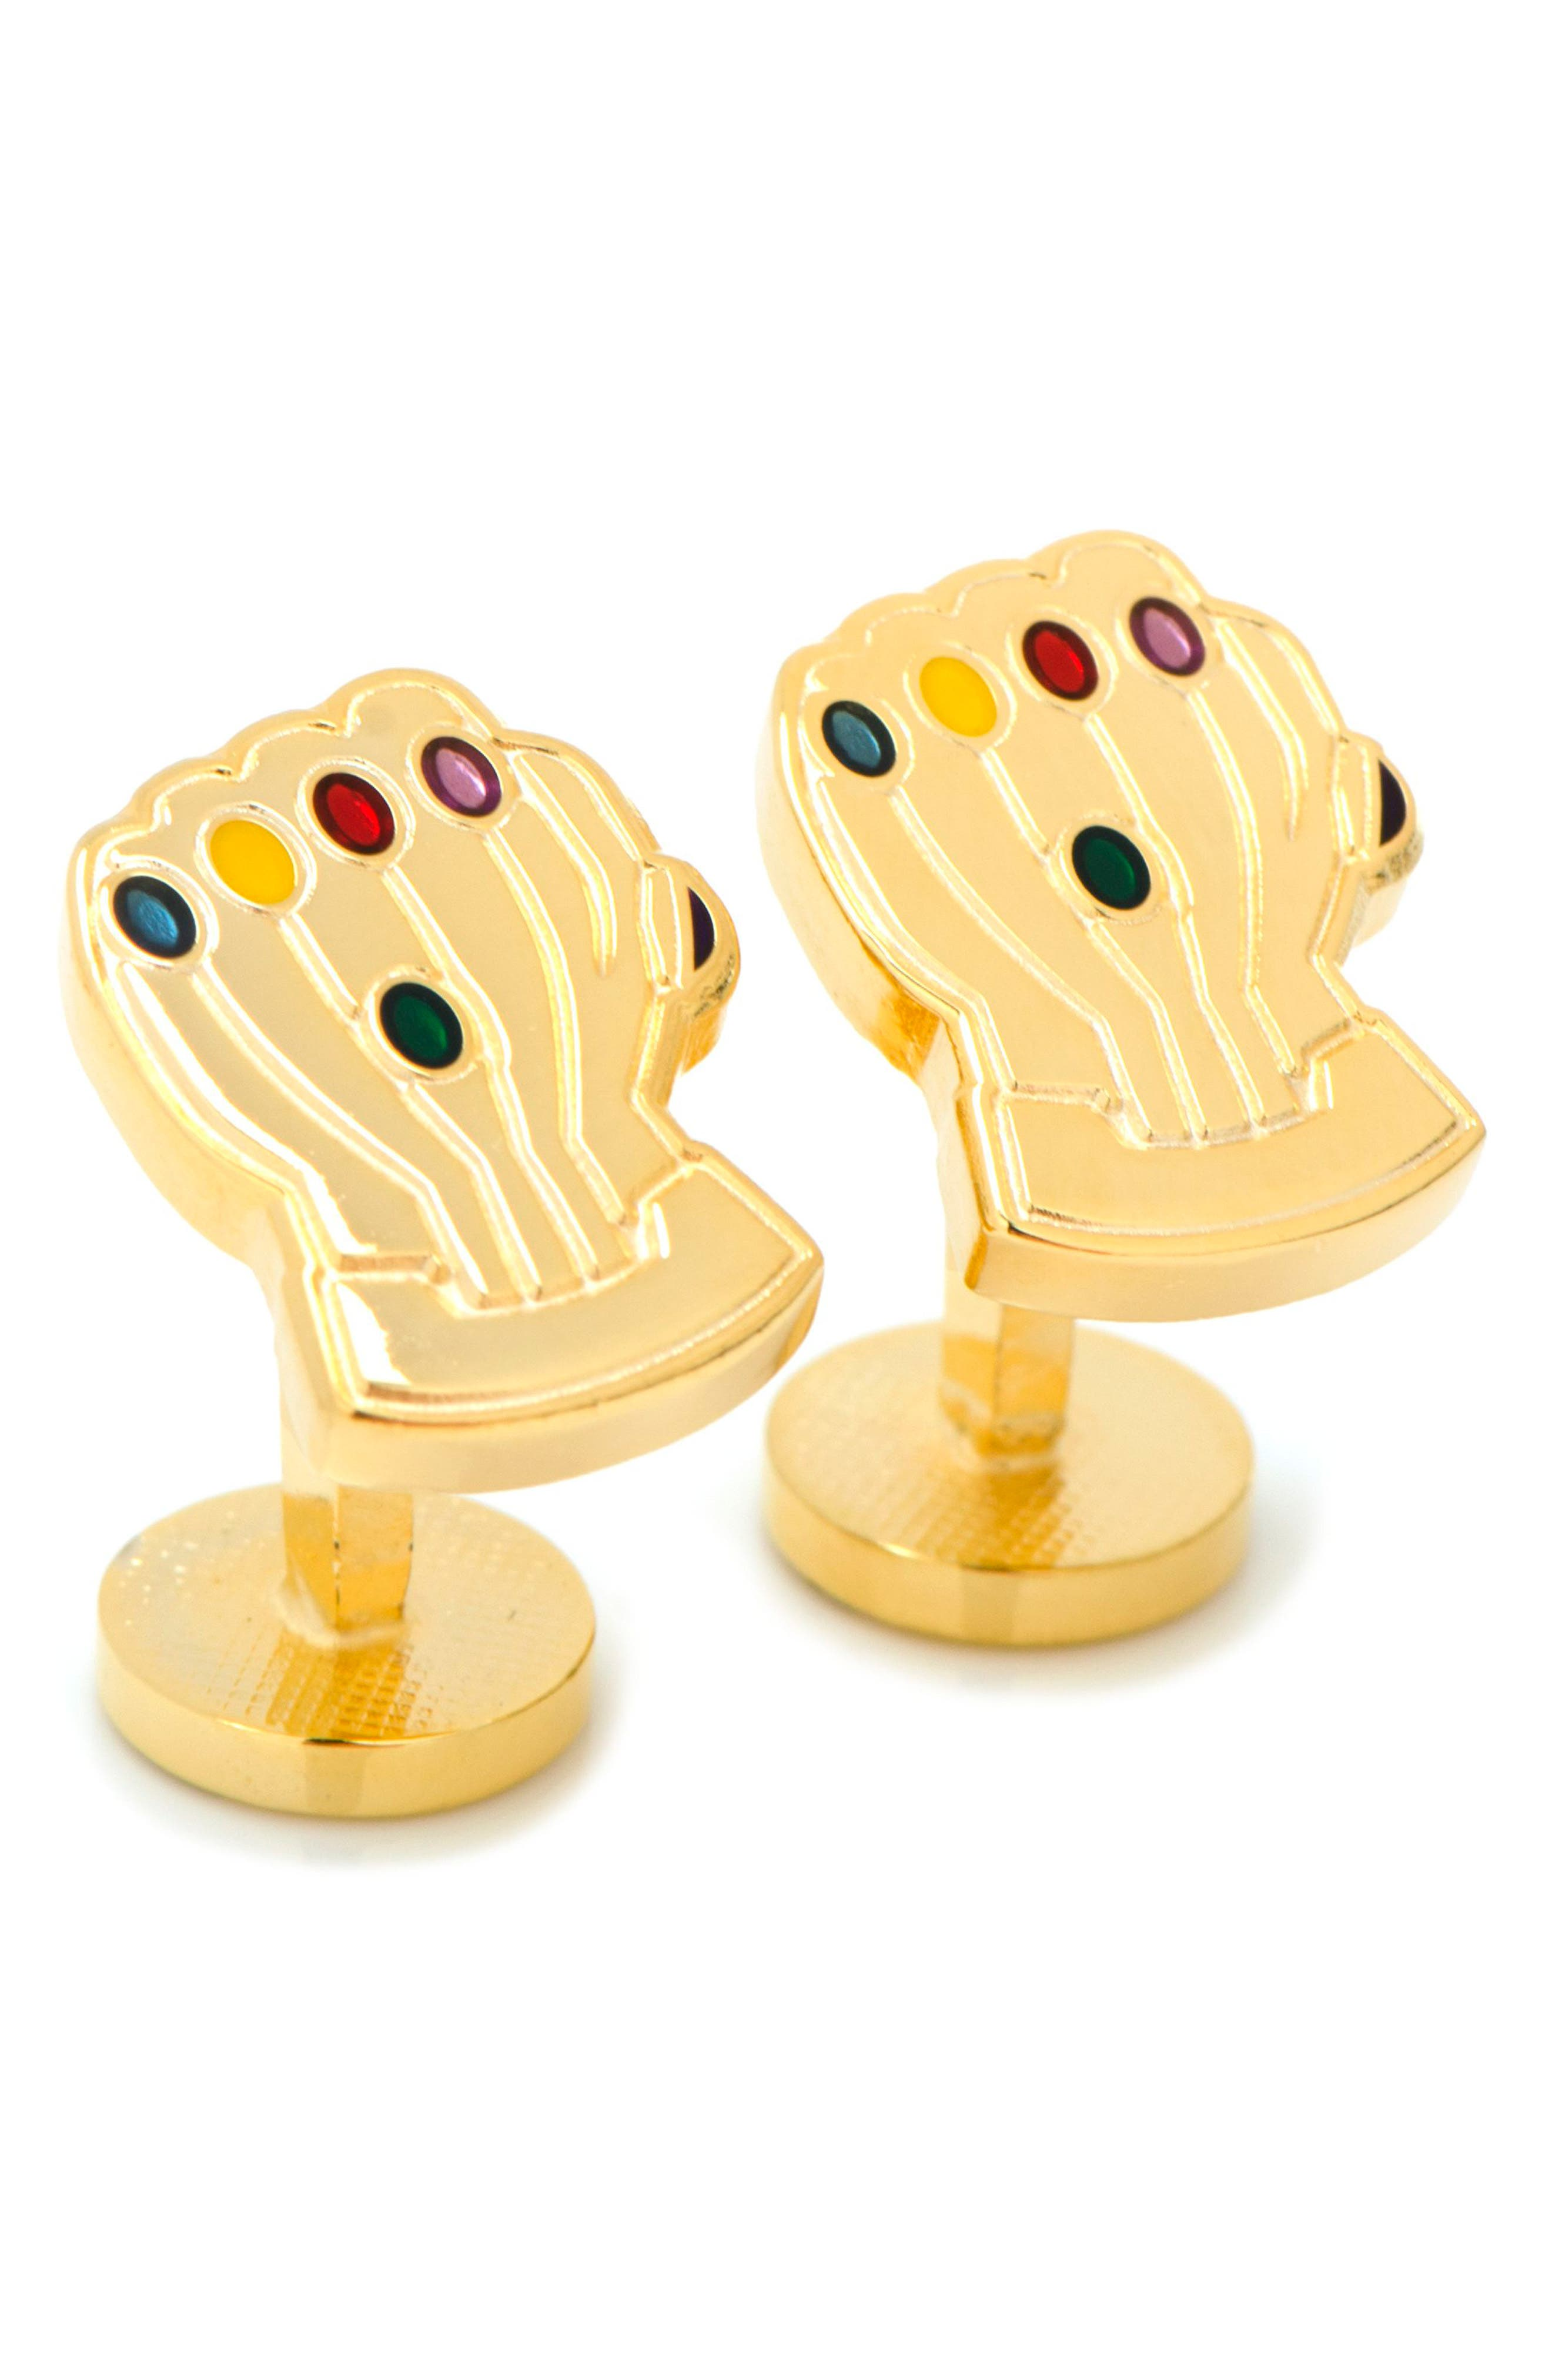 Thanos Infinity Gauntlet Cuff Links,                         Main,                         color, GOLD